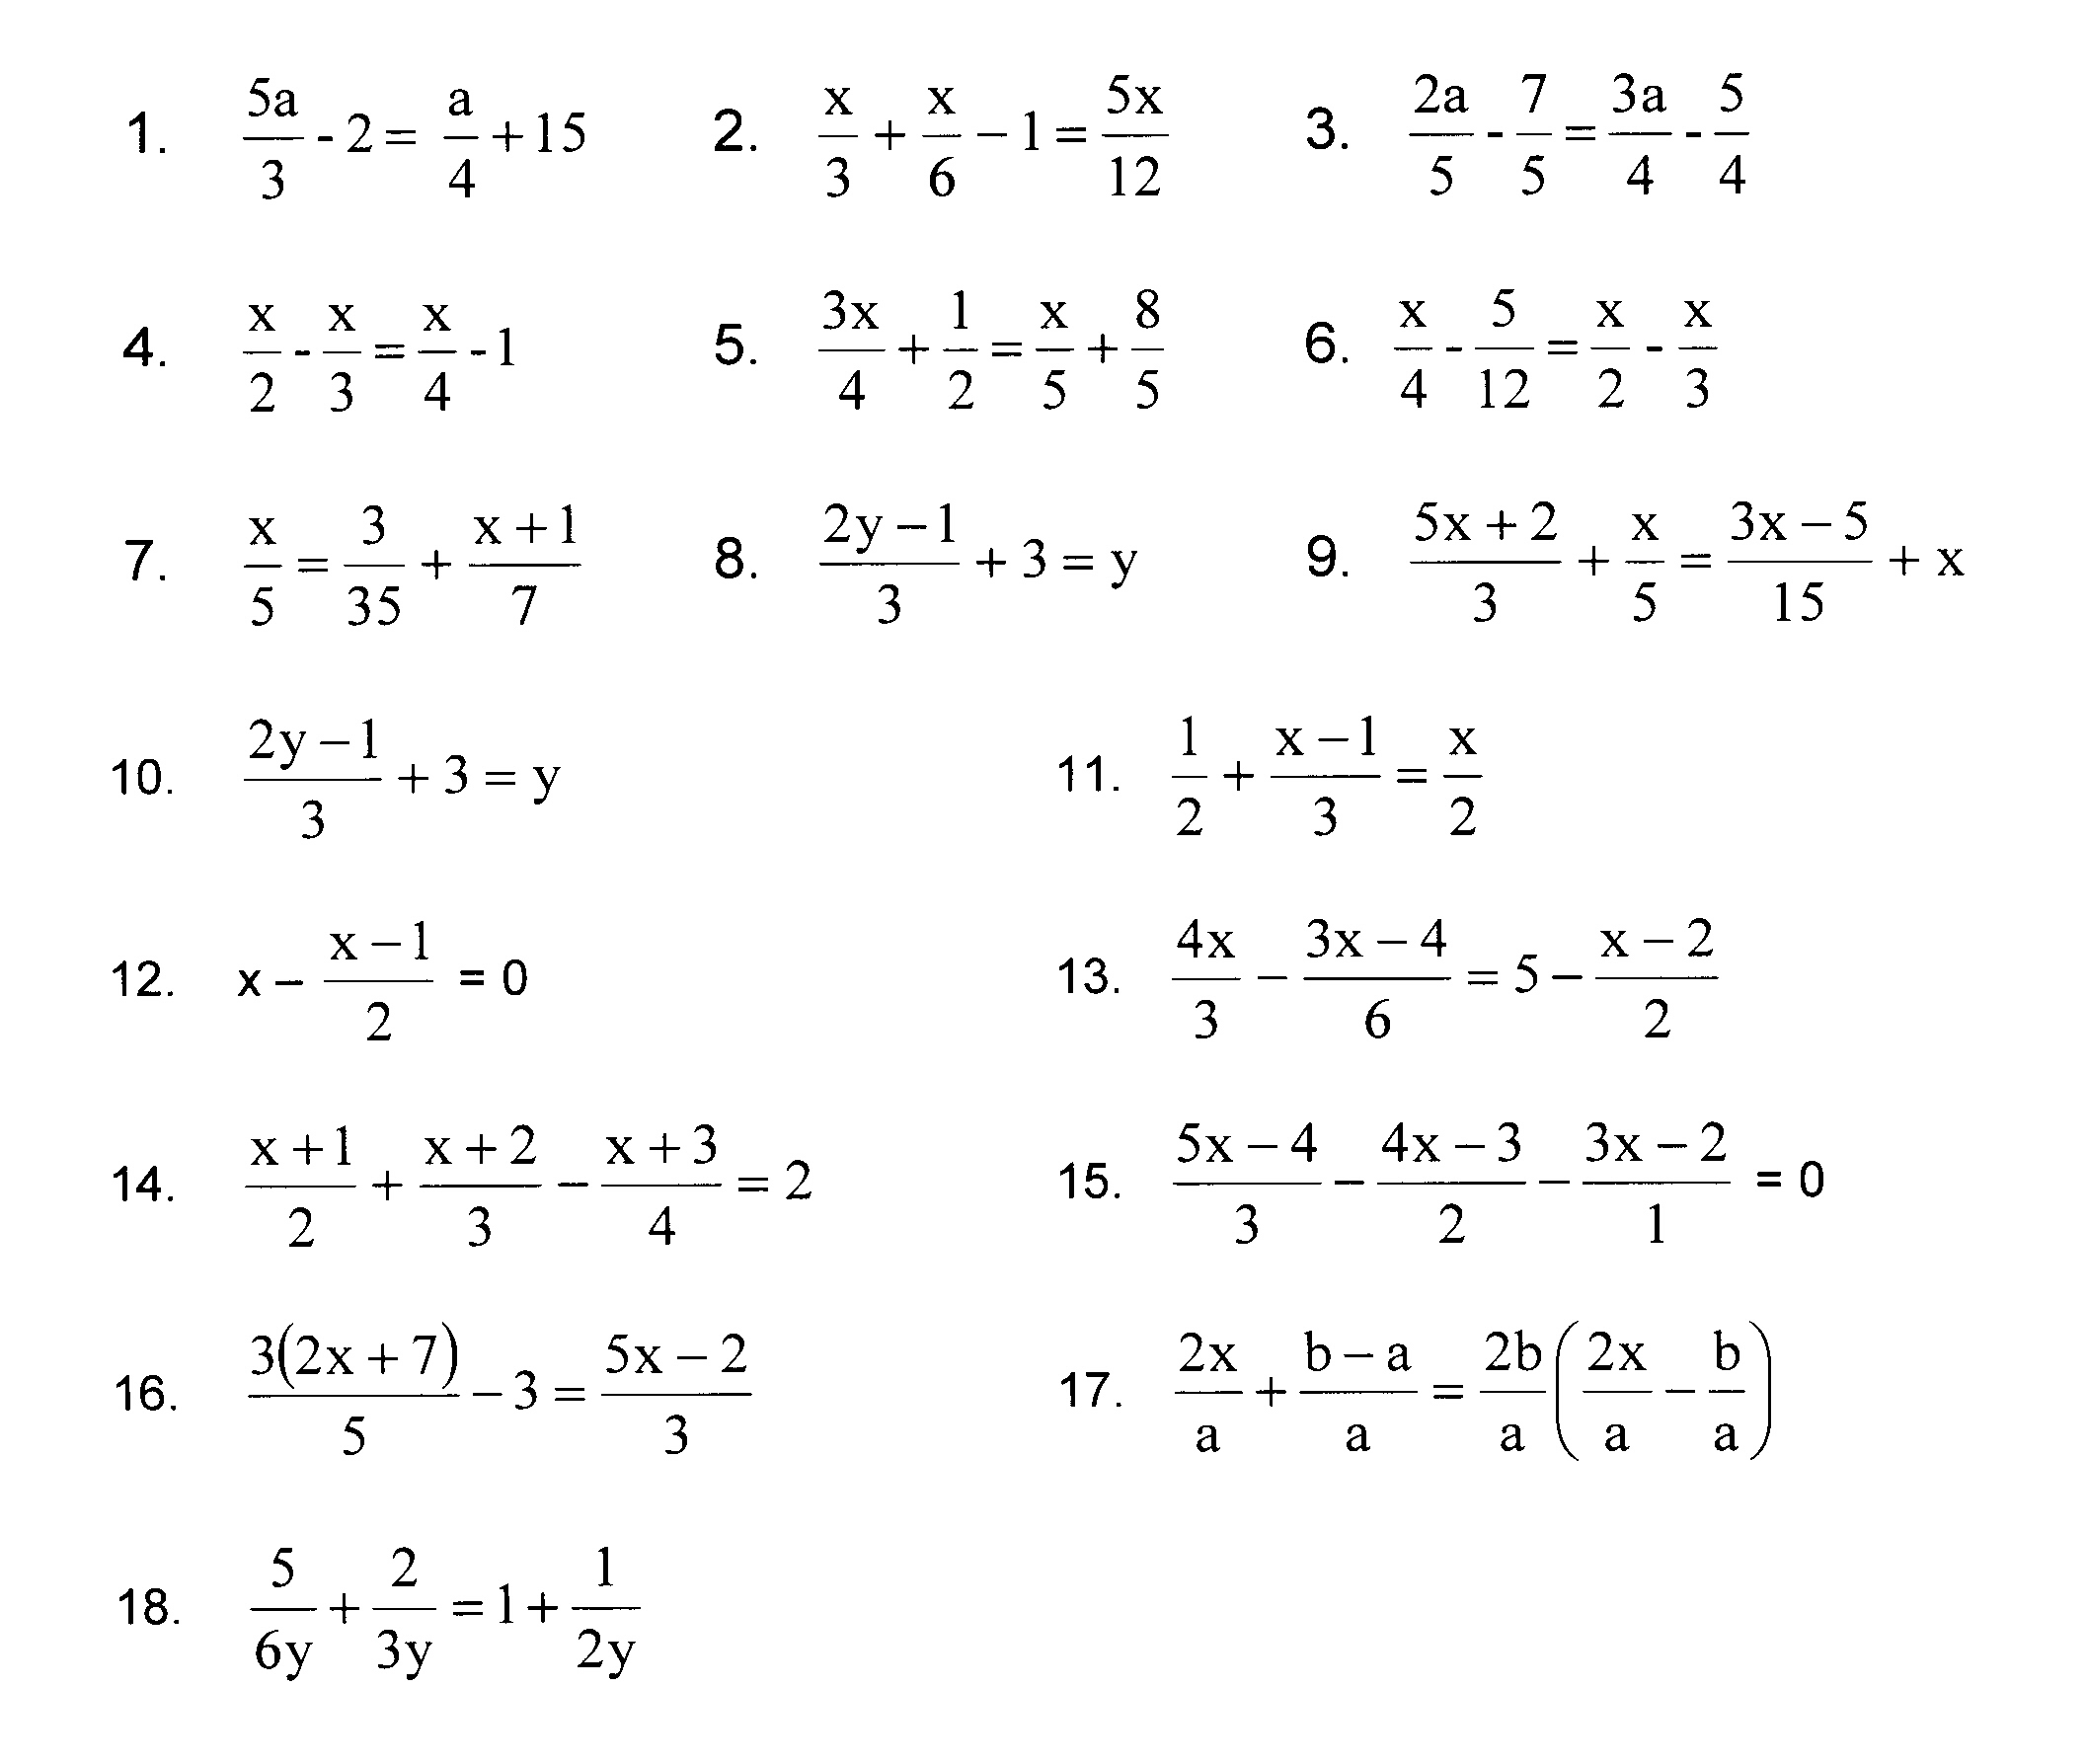 Worksheets Solving Equations With Fractions Worksheet solving equations with fractions worksheets free conflict resolution for students abitlikethis